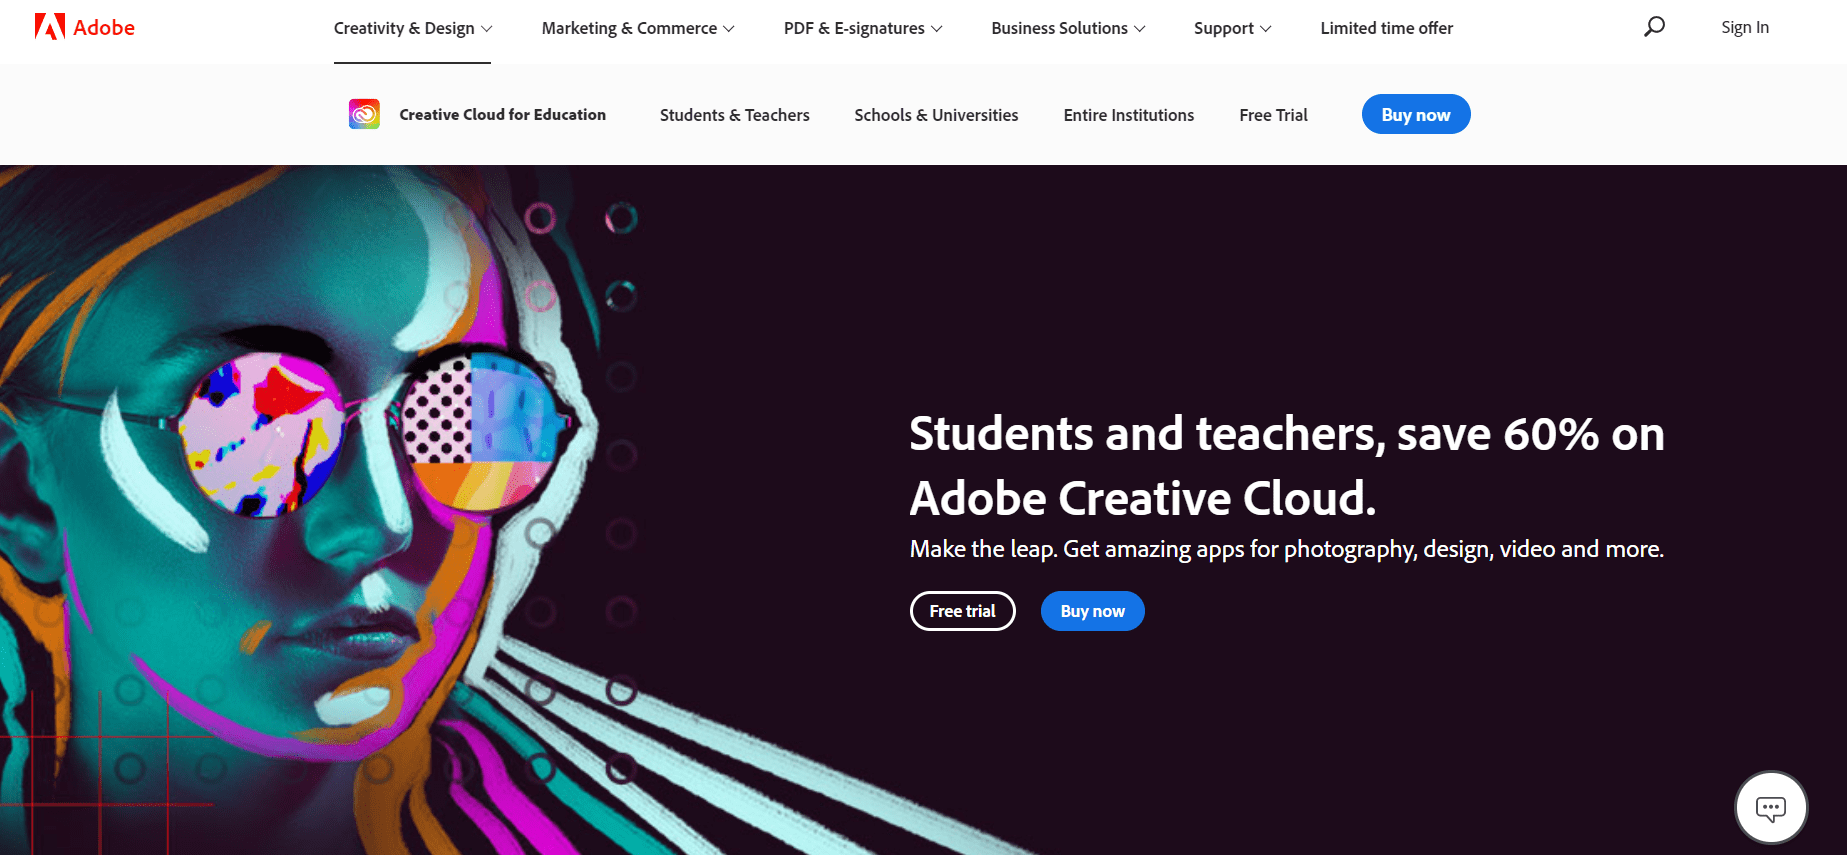 Adobe Black Friday Deals & Sales for Student and Teacher